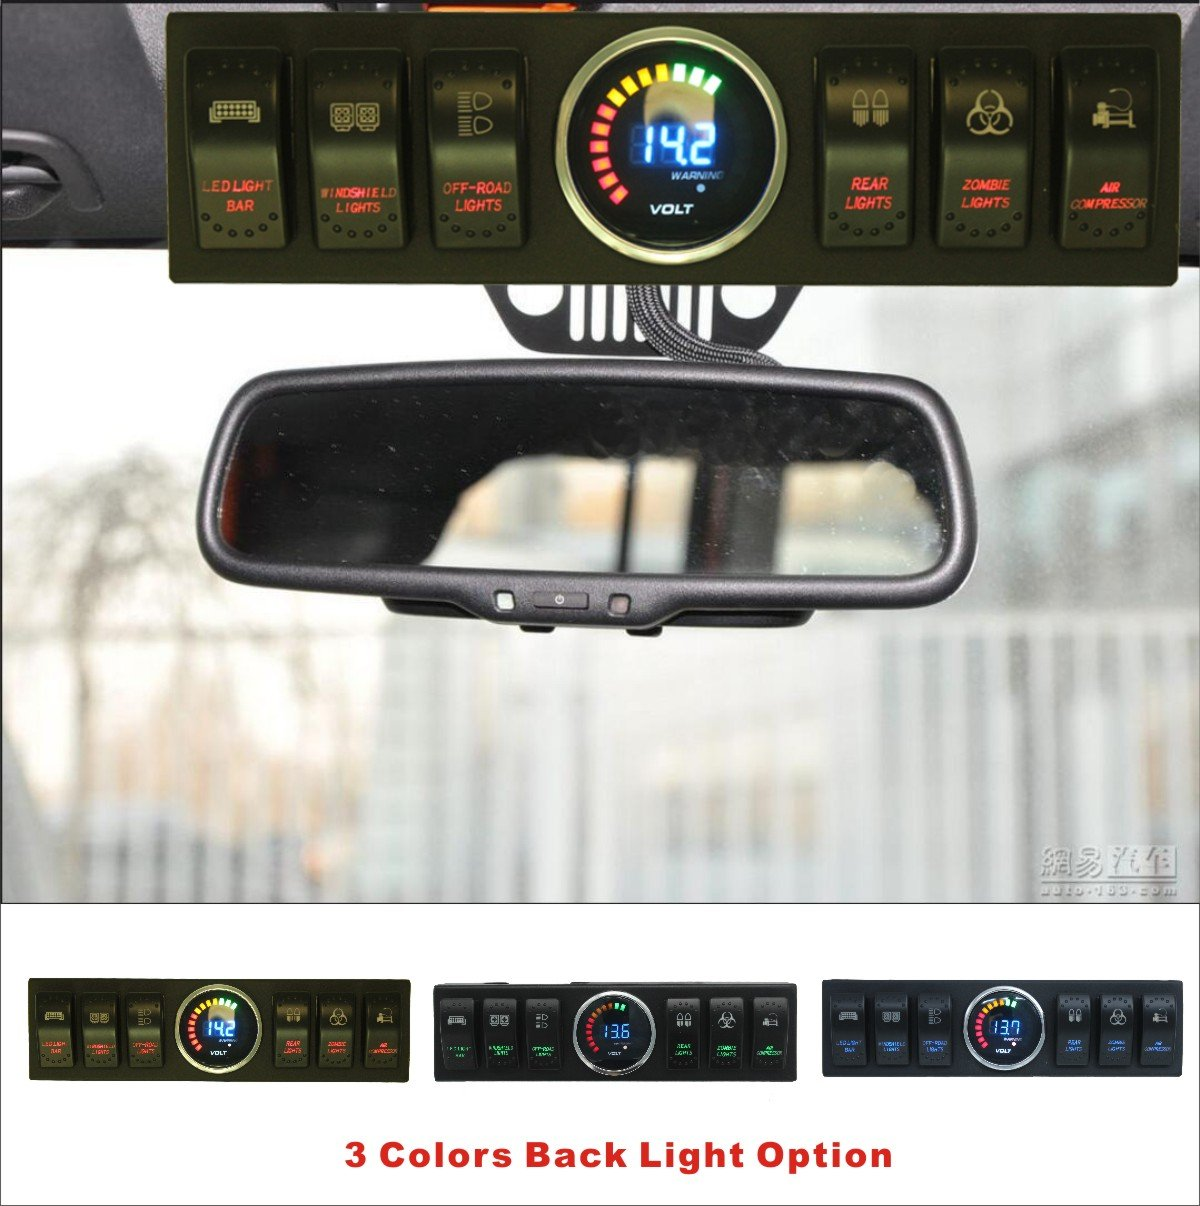 Apollointech Jeep Wrangler JK & JKU 2009-2017 Overhead 6-Switch Pod / Panel with Control and Source System Blue Back Light( Comes with 10 Laser Switch Covers )